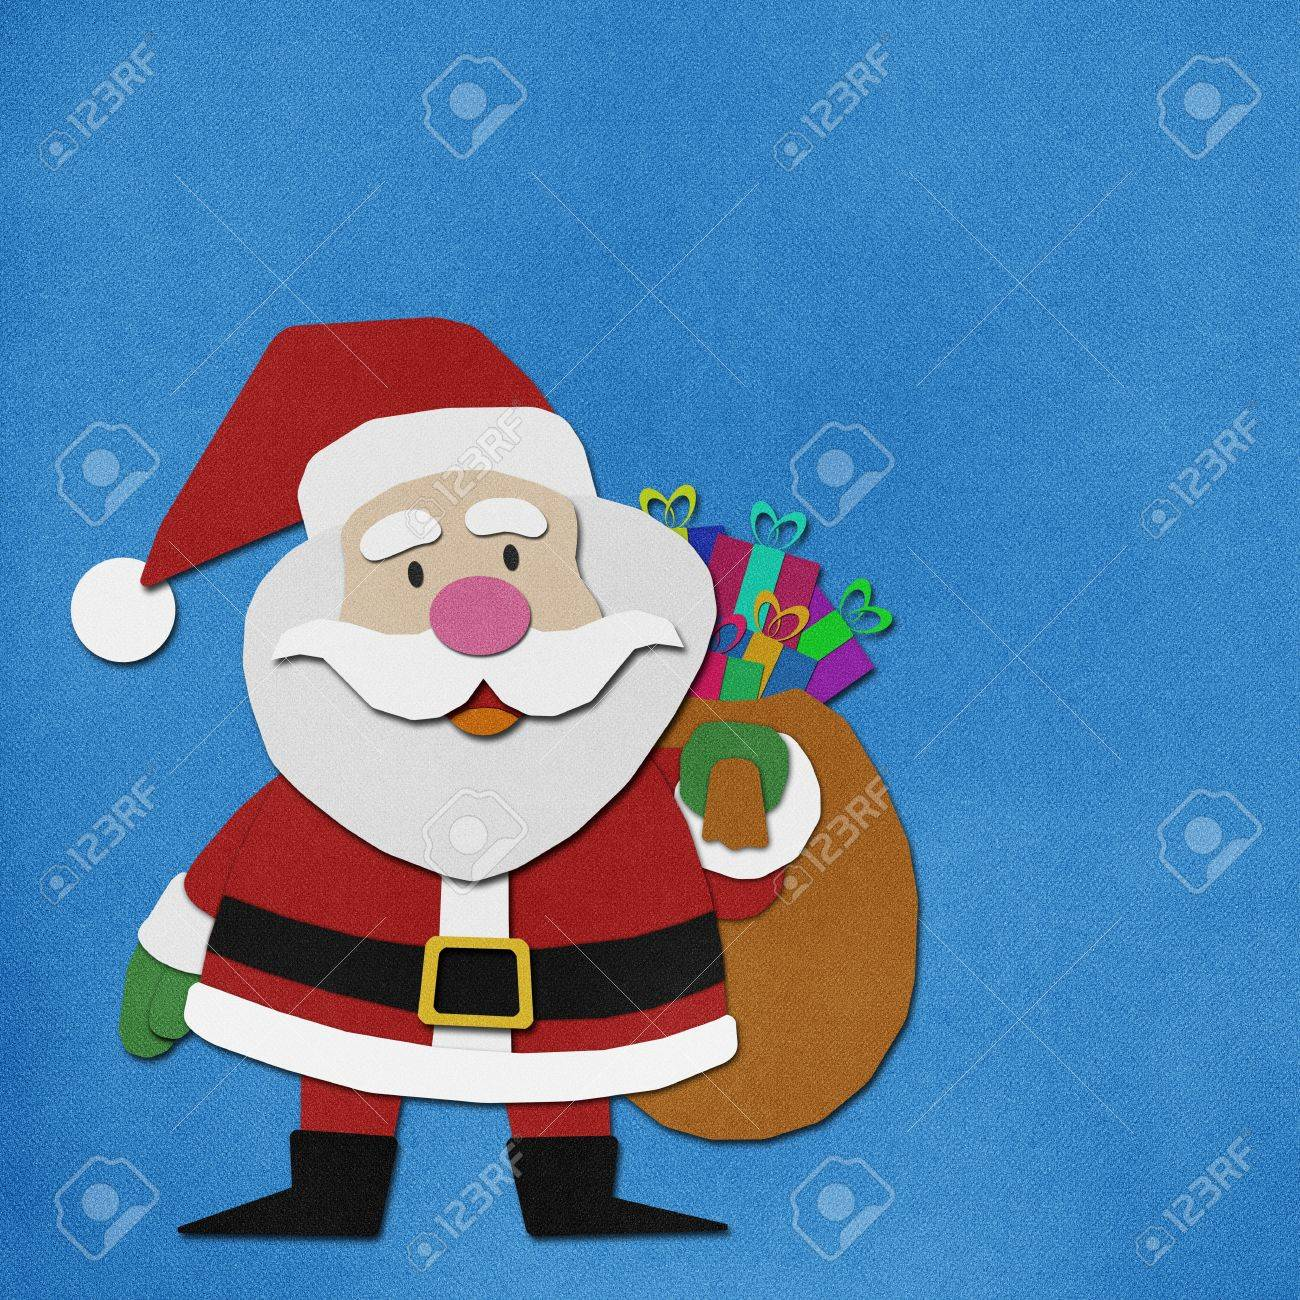 Uncategorized Santa Claus Paper santa claus recycled paper craft stock photo picture and royalty 15764753